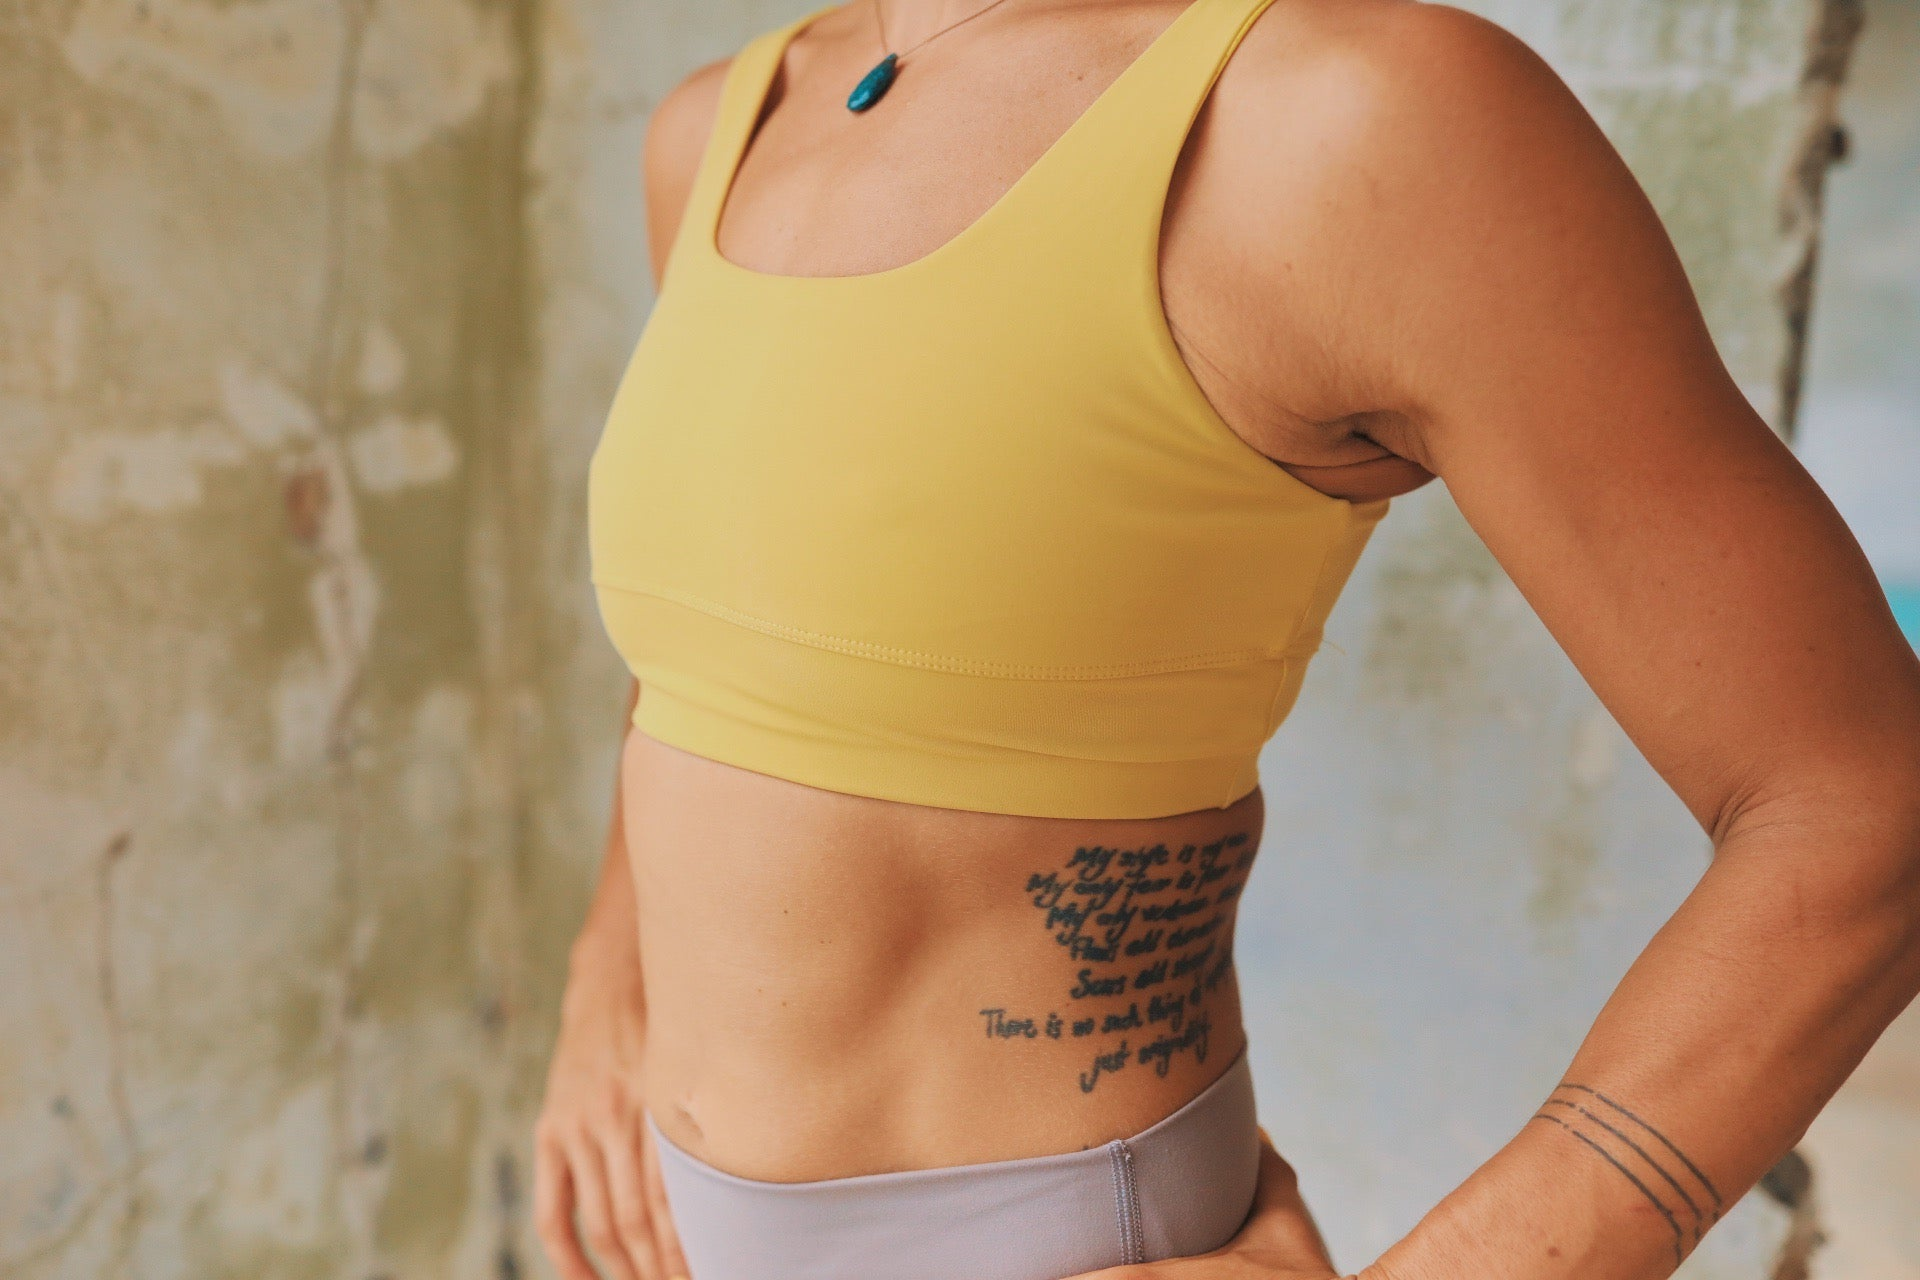 The Golden Sports Bra